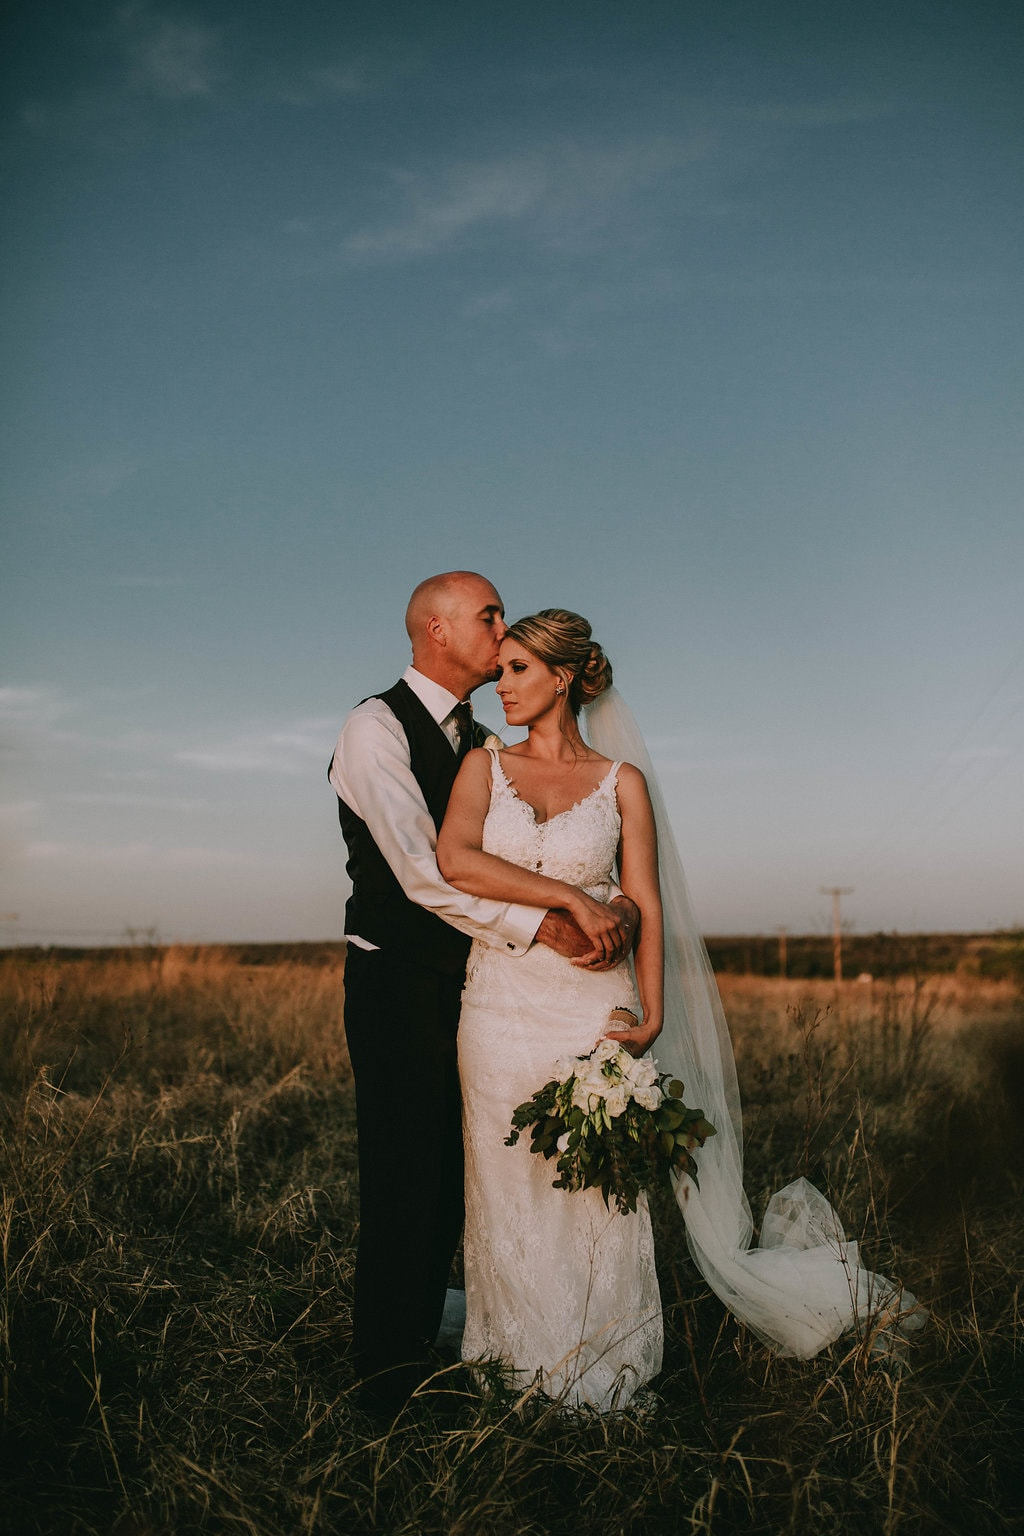 Sentimental Rustic Wedding | Image: Jessica J Photography